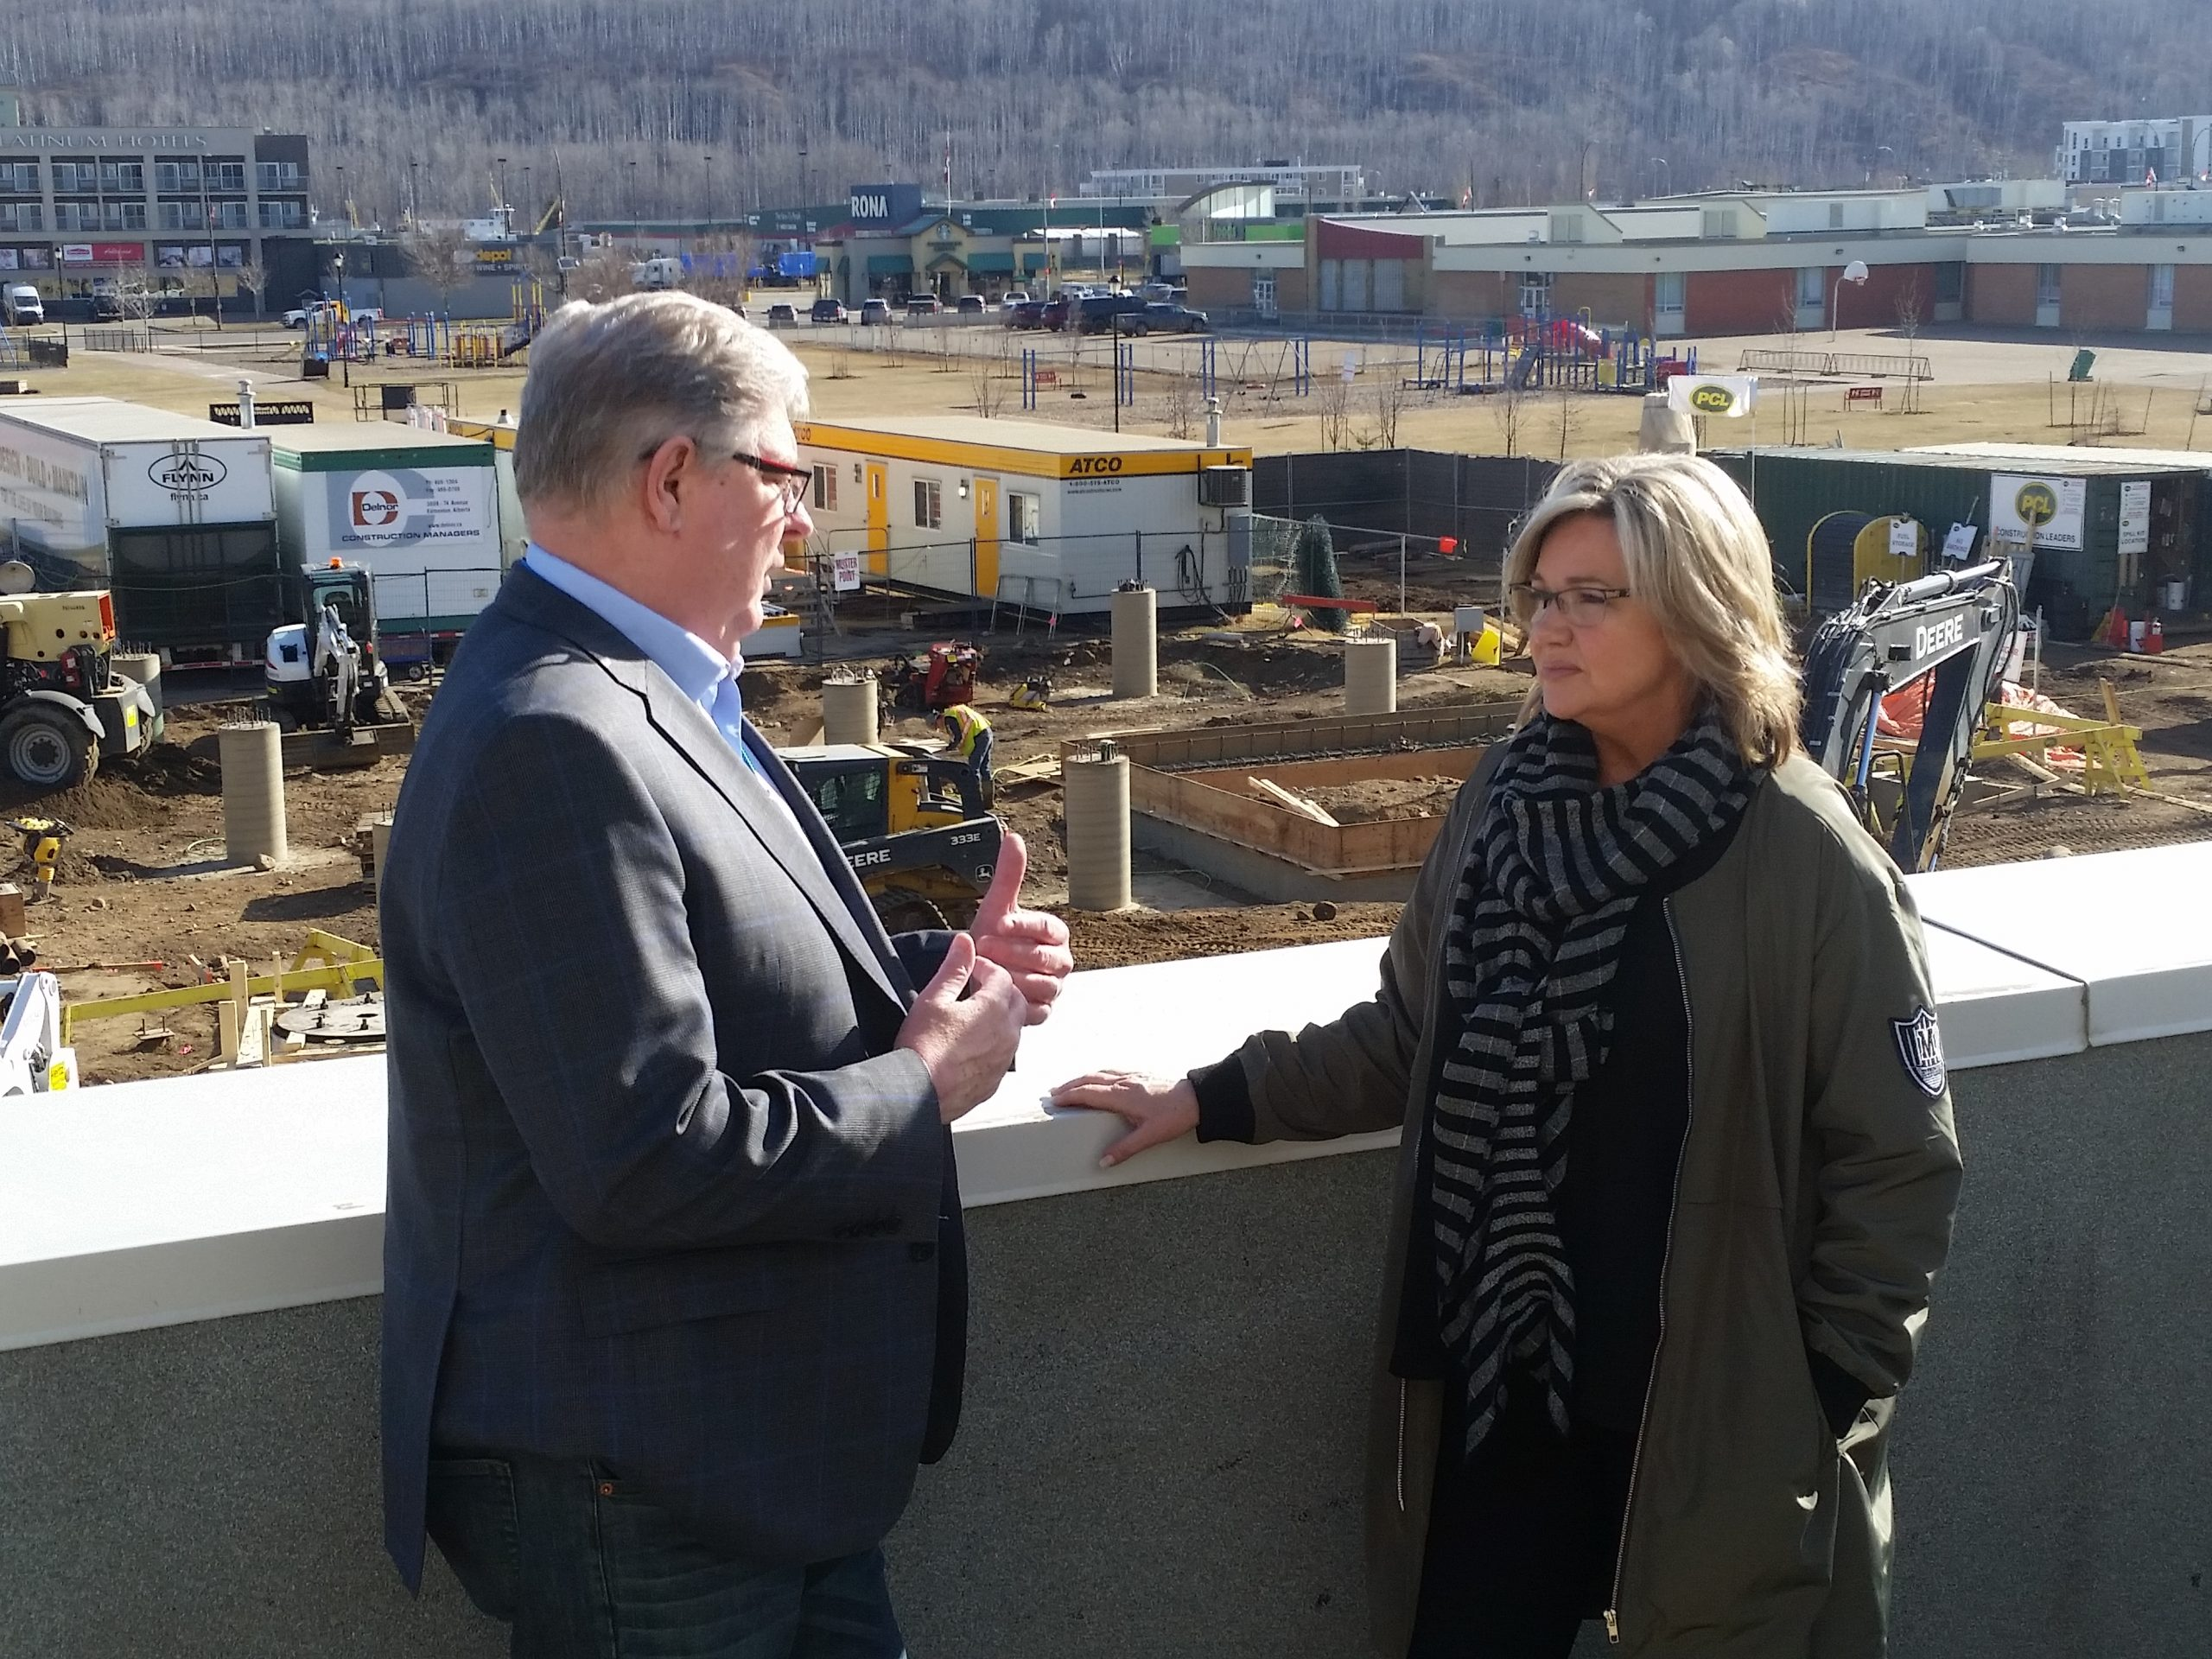 Construction On Schedule for NLRHC's Helipad